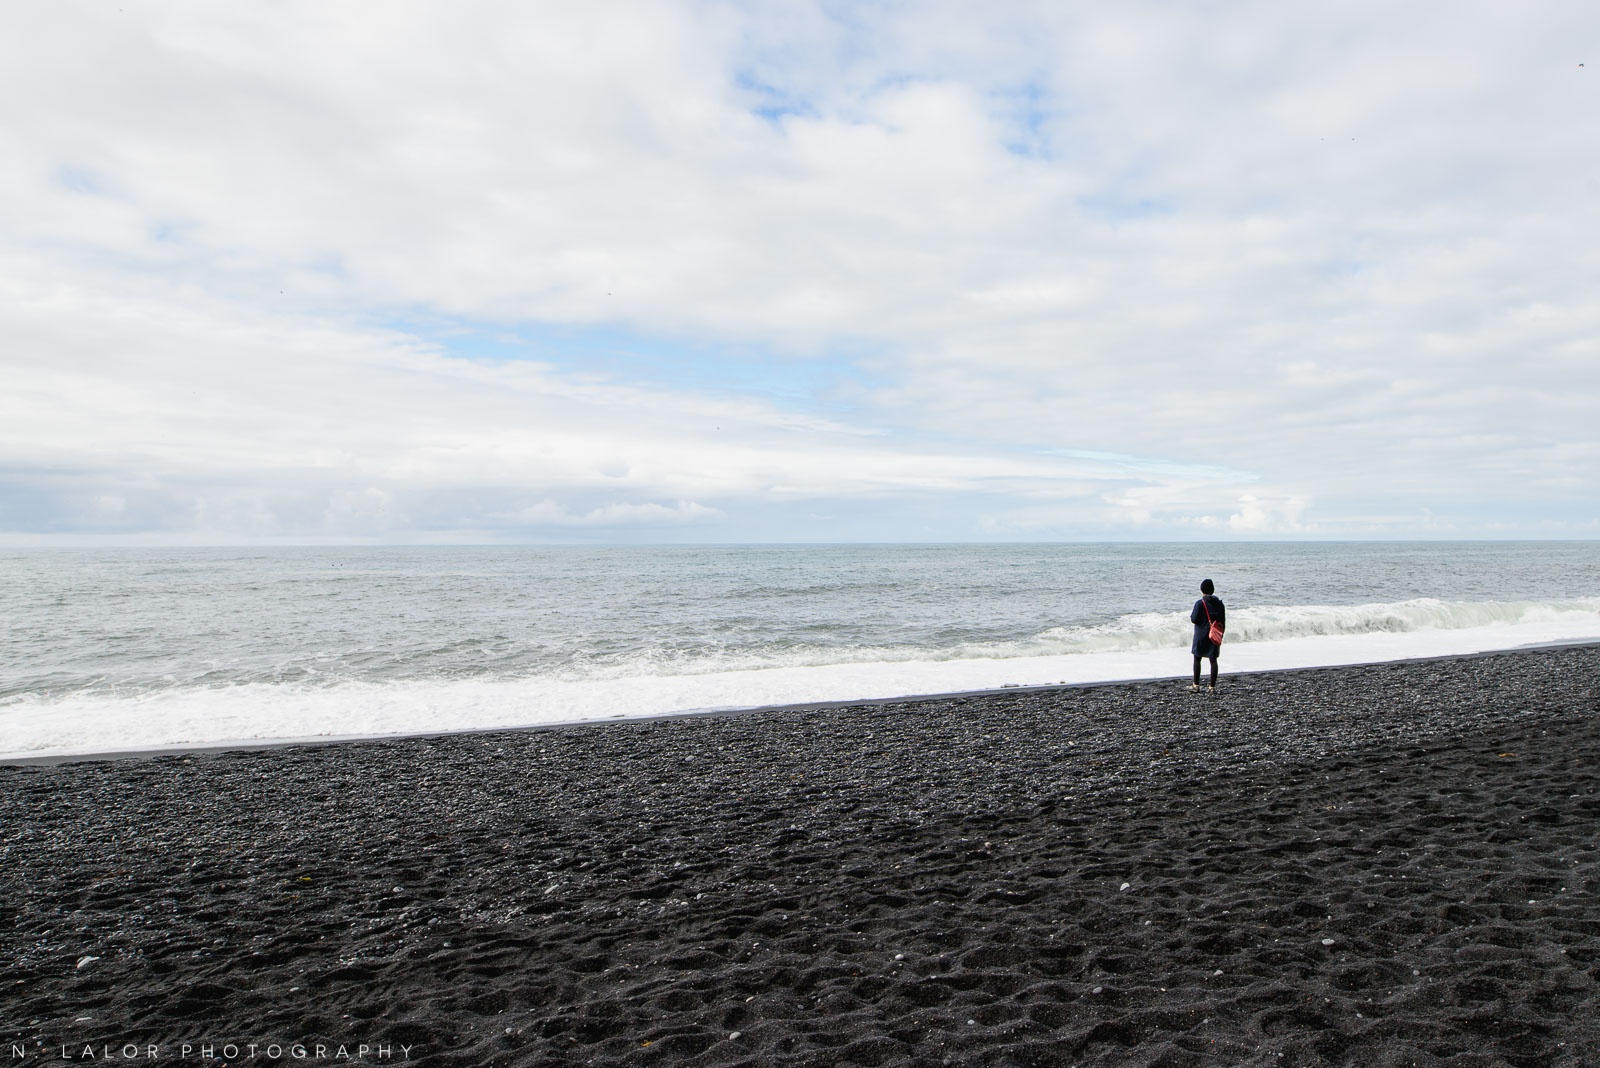 Reynisfjara Black Sand Beach. From my trip to Iceland in 2018. Photograph by Nataliya Lalor.